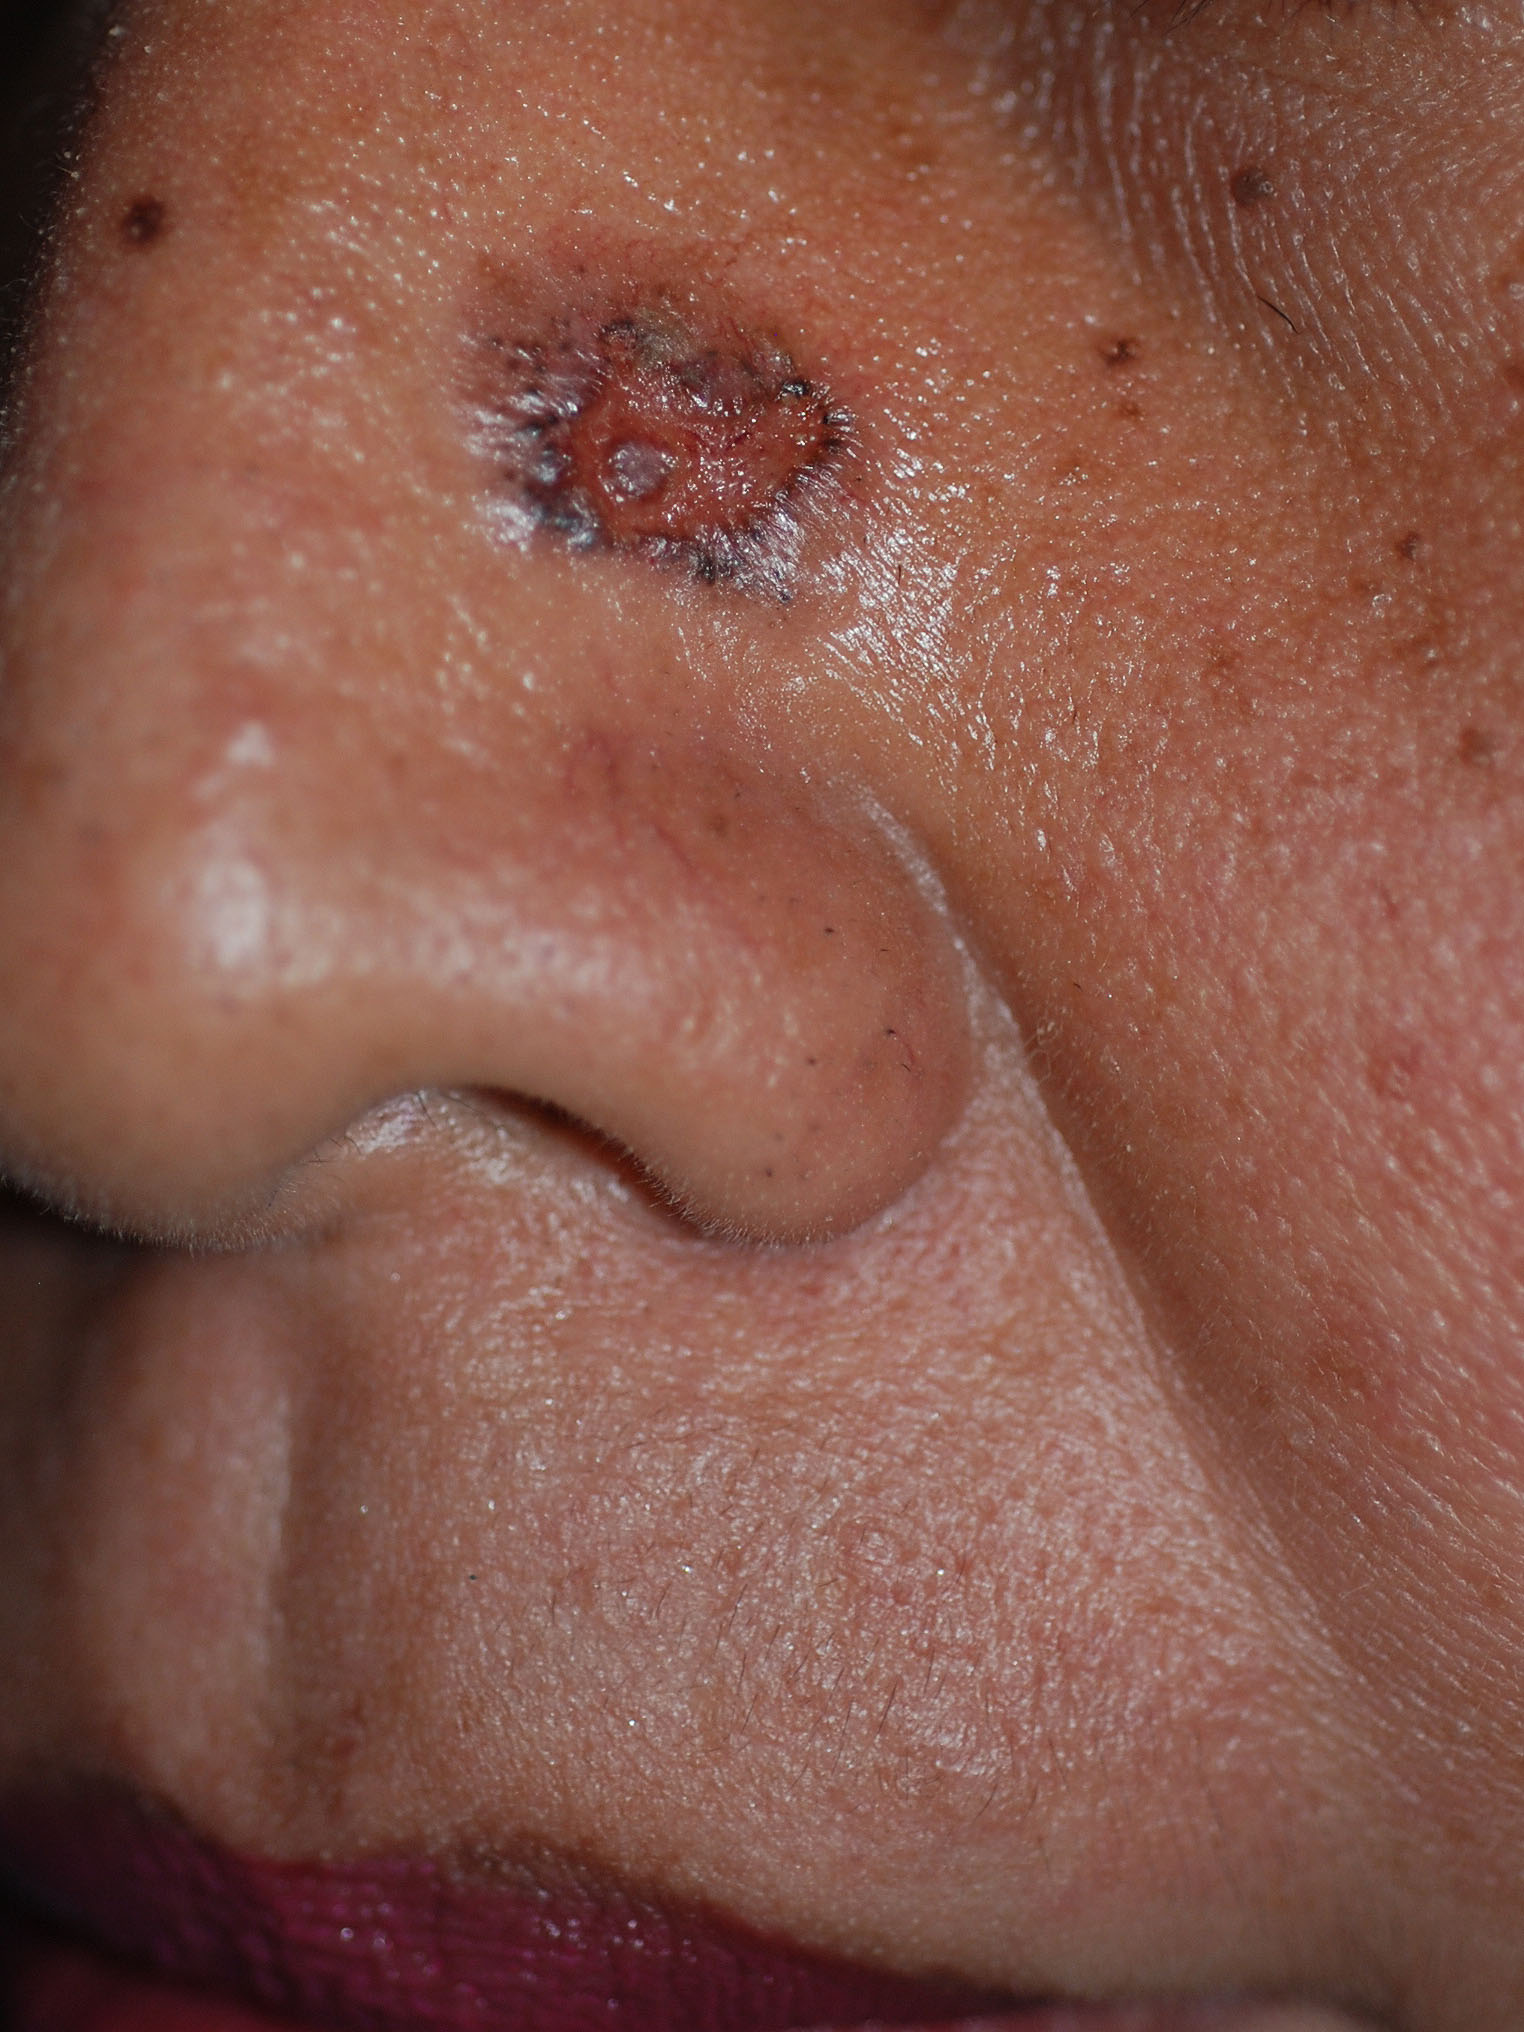 Basal cell carcinoma in a Southeast Asian person